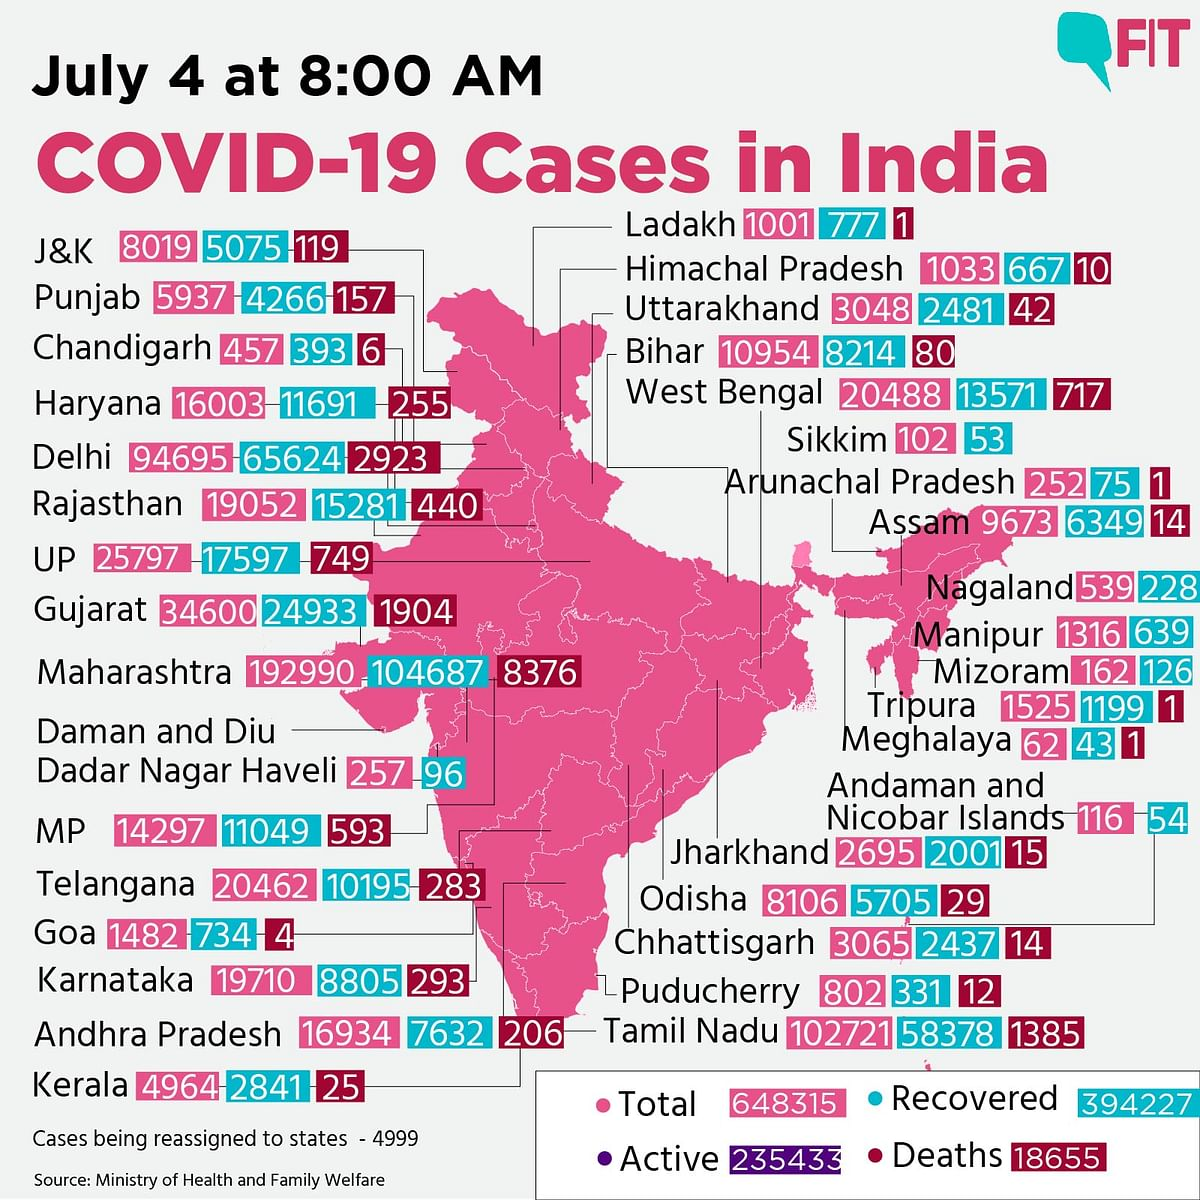 COVID 19 India: Over 22,000 New Cases Recorded in a Day